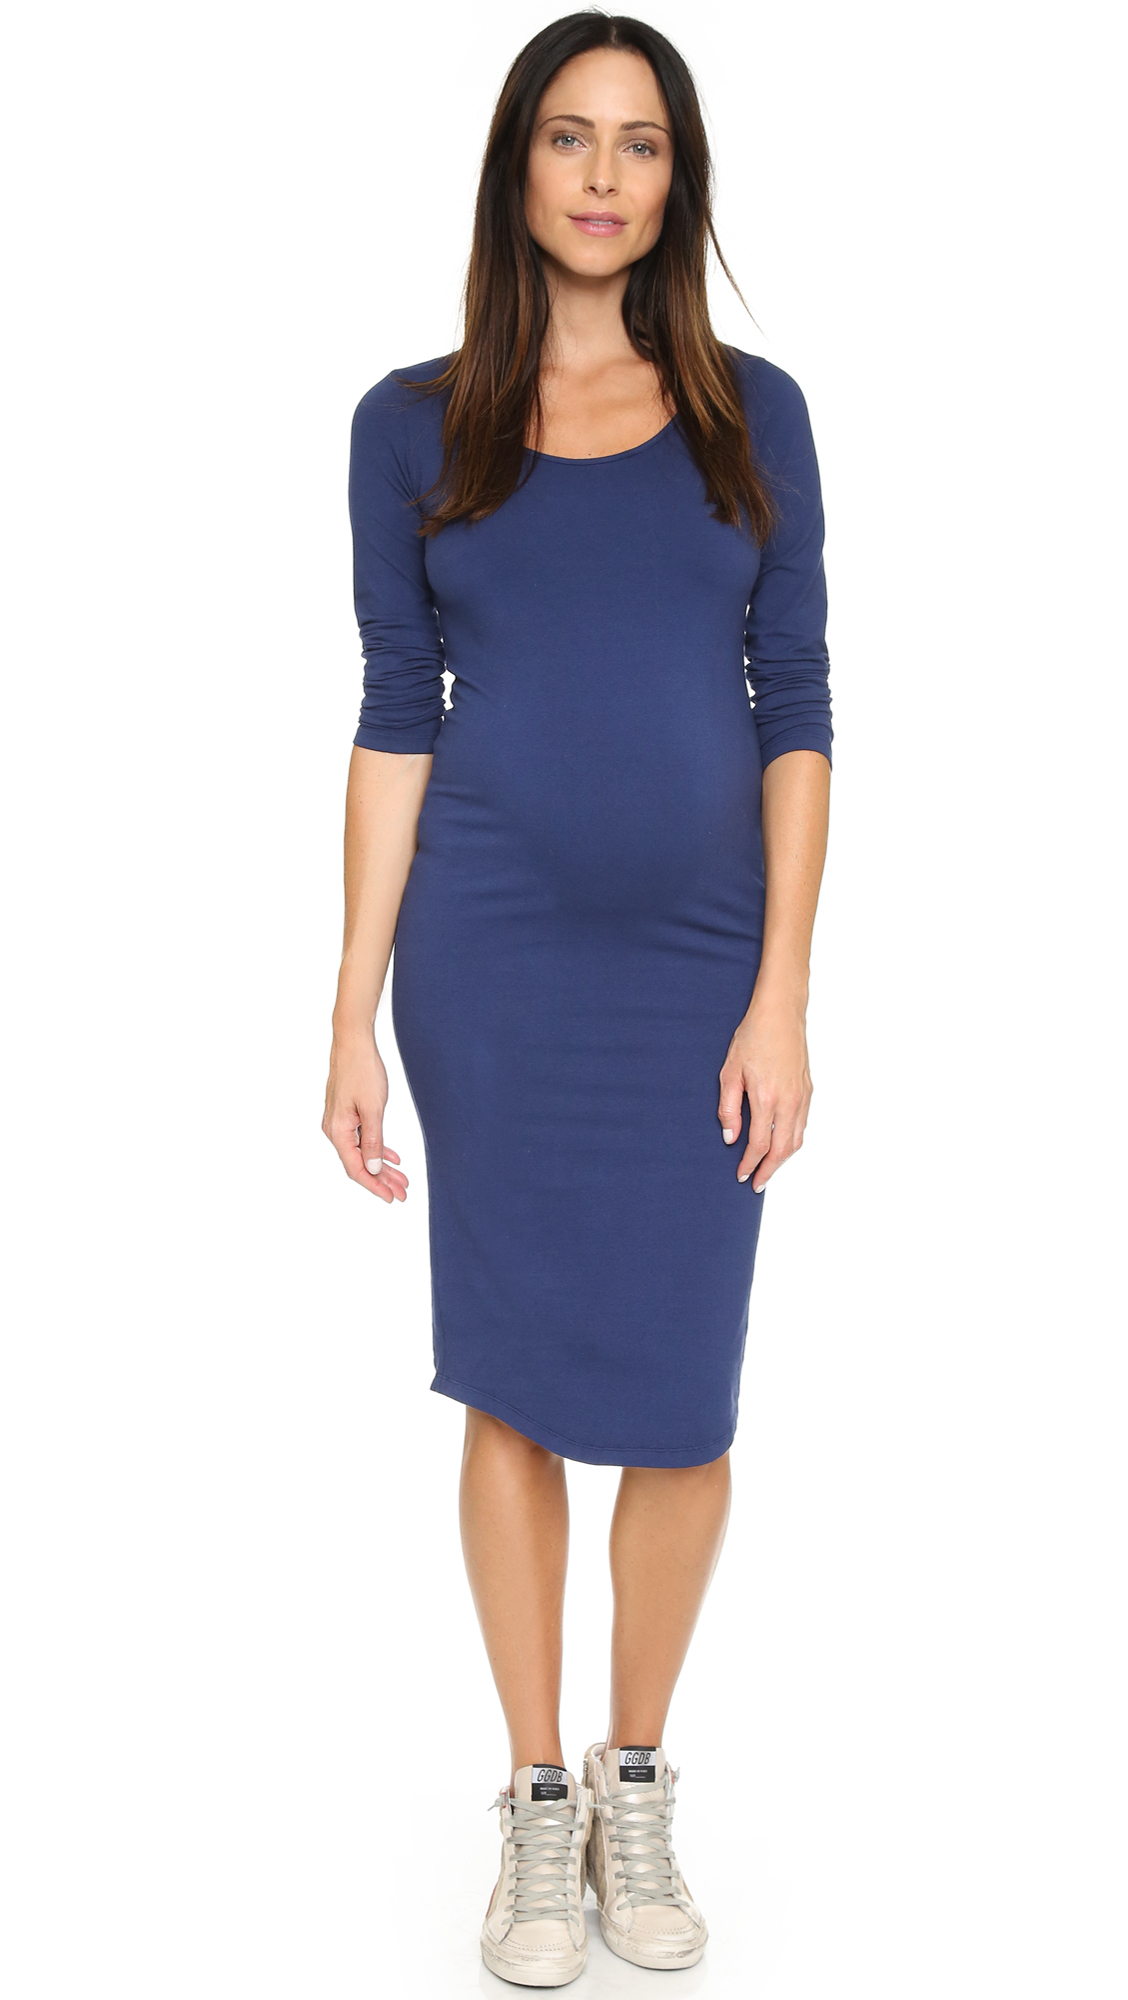 Find a great selection of maternity dresses for baby showers at Destination Maternity. Featuring Motherhood maternity dresses in a variety of styles! Blue Green Pink Red White Yellow Price $20 - $; $50 - $; Brand Motherhood Maternity Sleeve Length Long Sleeve Sleeveless Short Sleeve 3/4 Sleeve Dress Style Maxi Dress Body Con Aline.